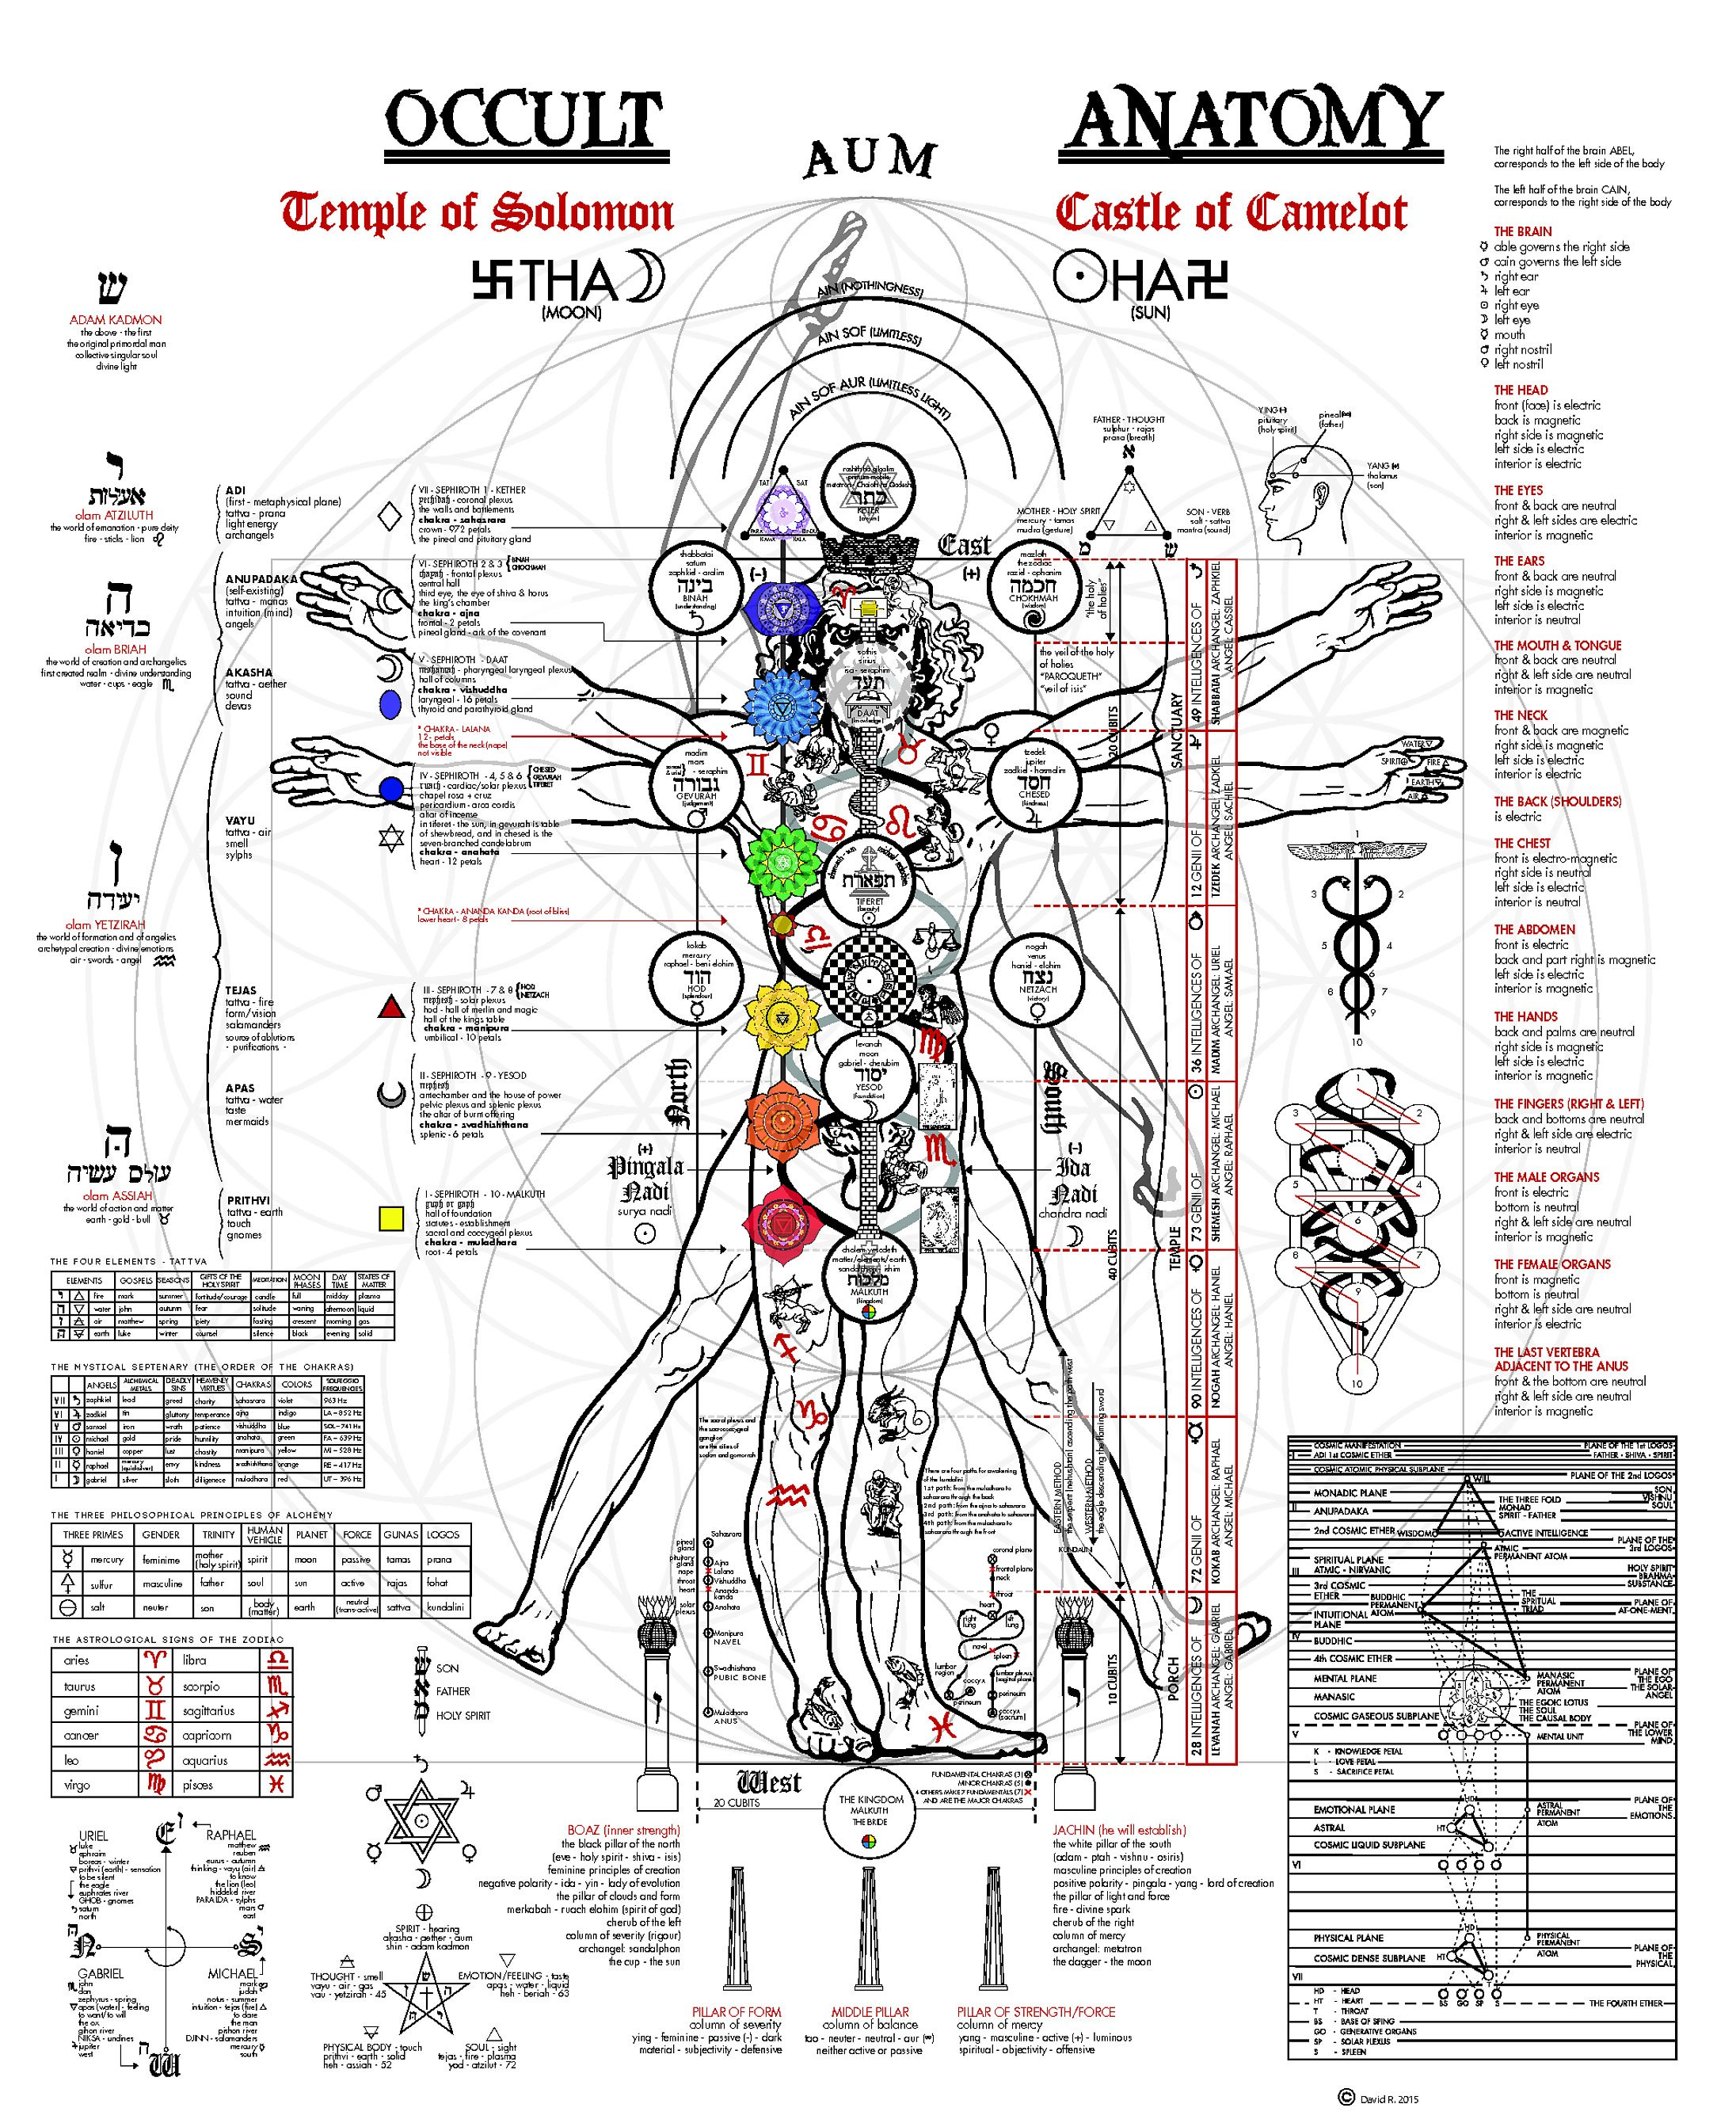 A Fascinating Illustration Of The Occult Anatomy Of Man Aleph